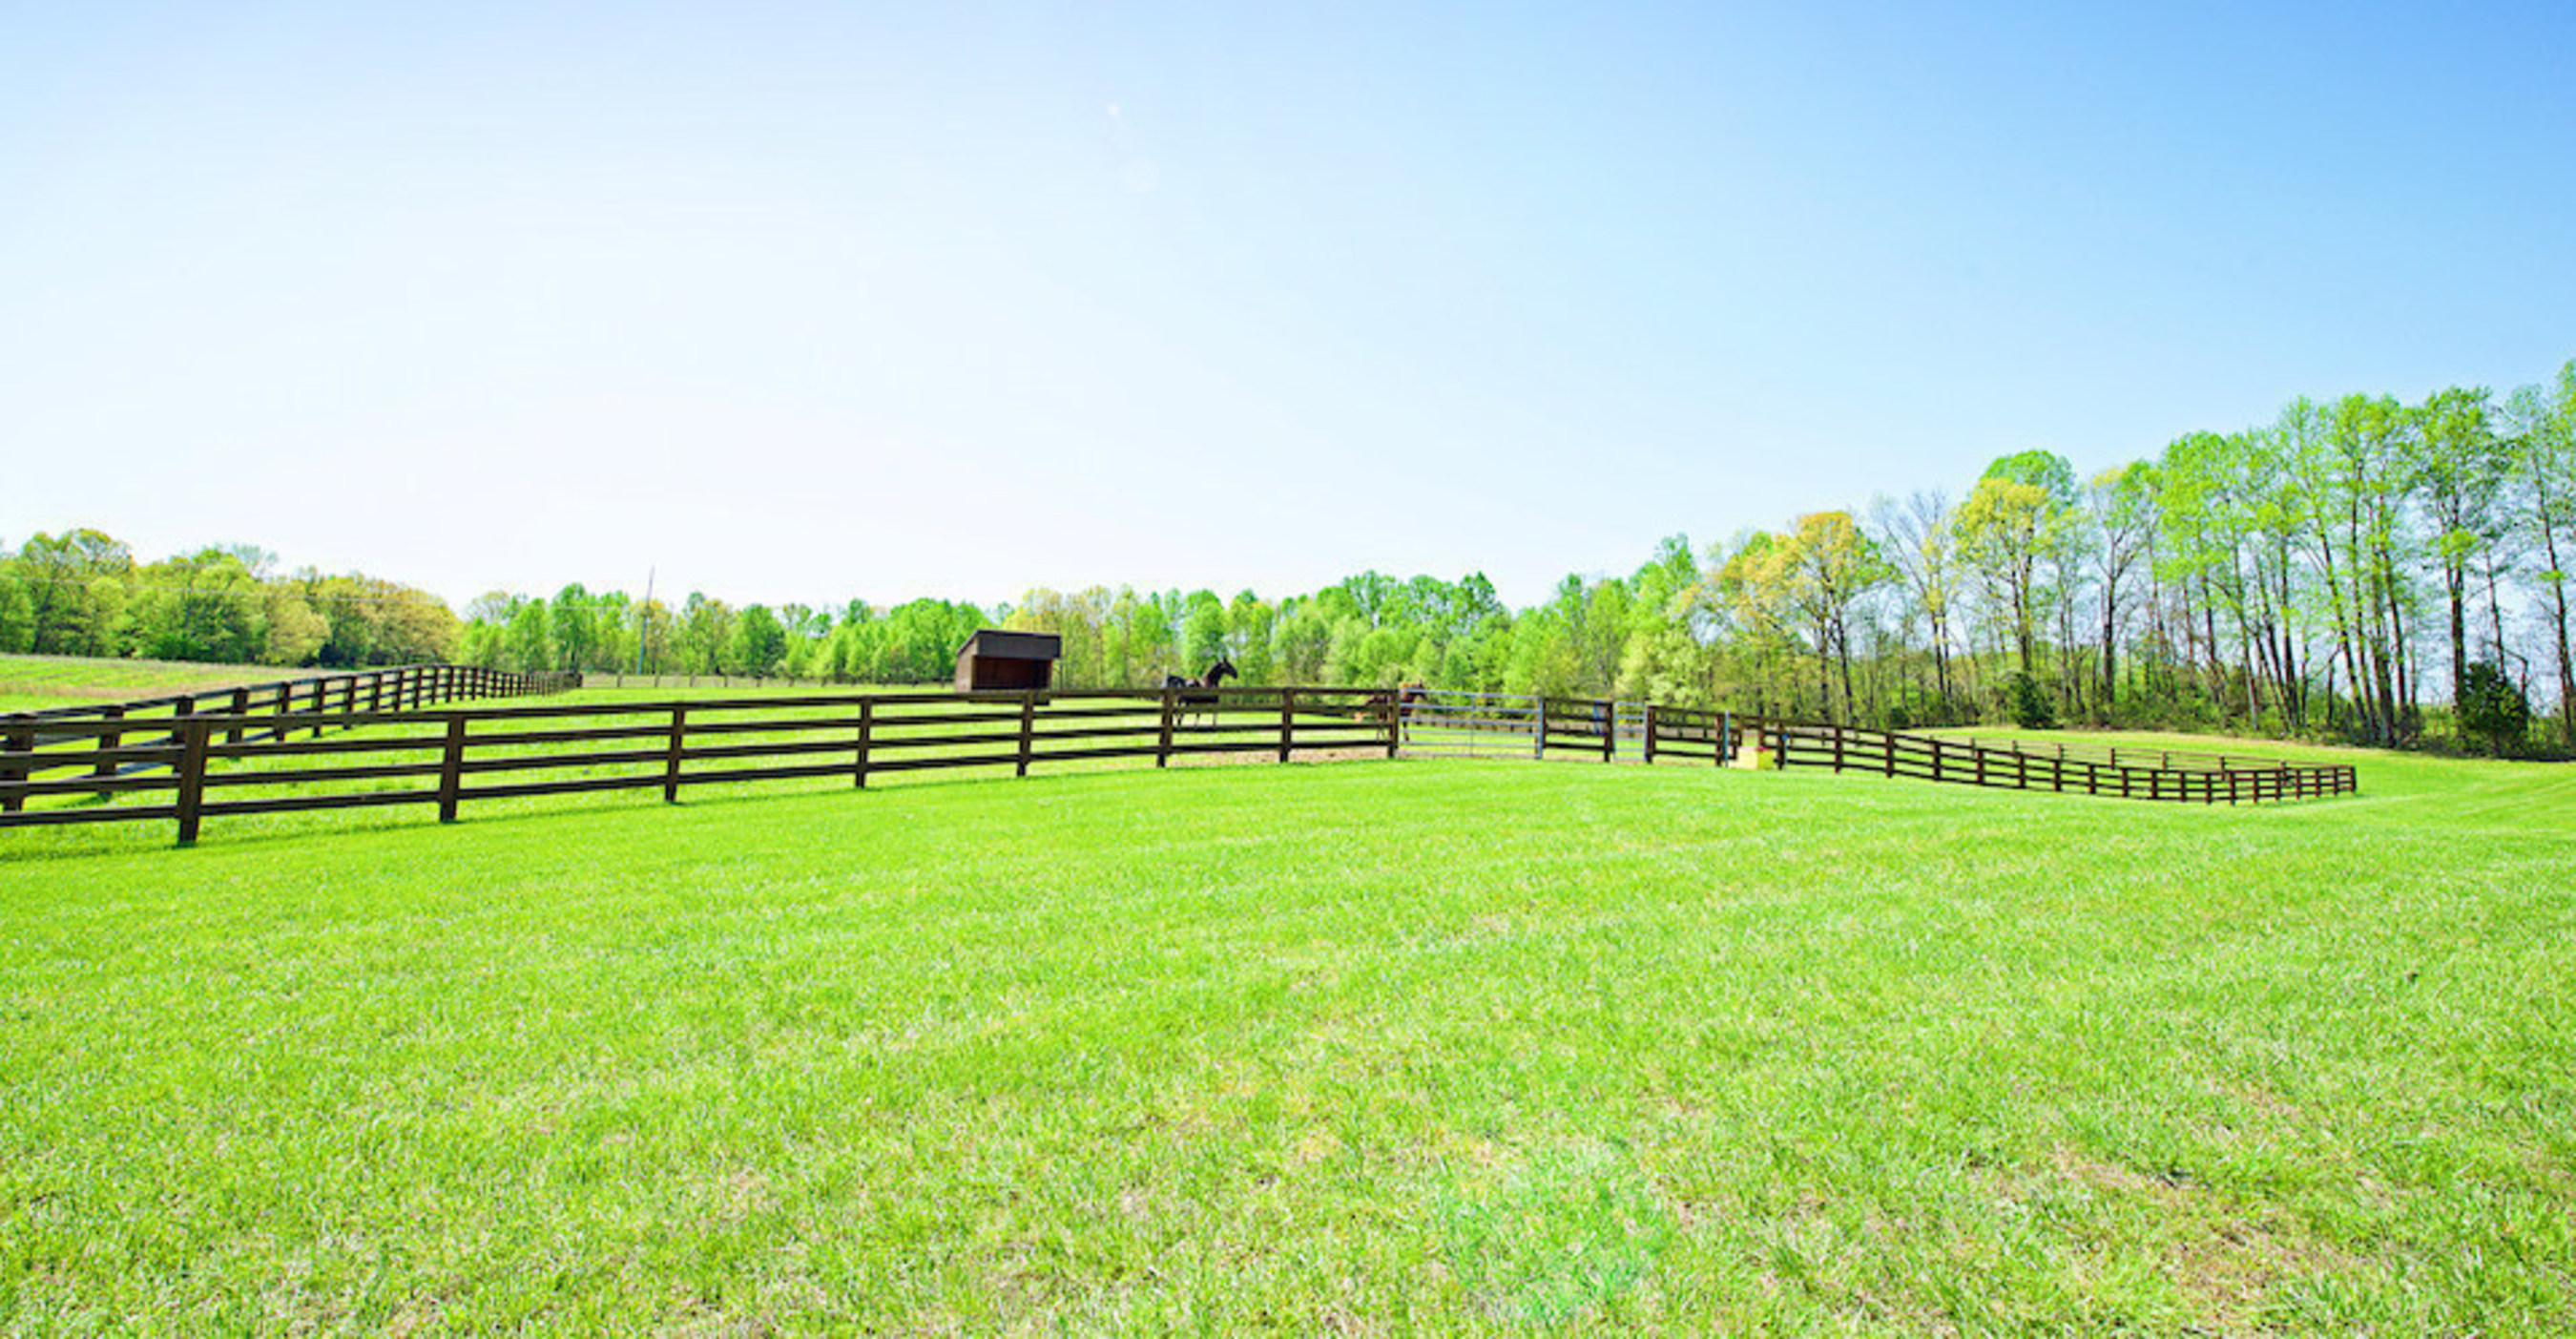 Supreme Auctions Offers Kentucky Horse Property At Absolute No Reserve Auction - A Rare Opportunity, Selling June 6